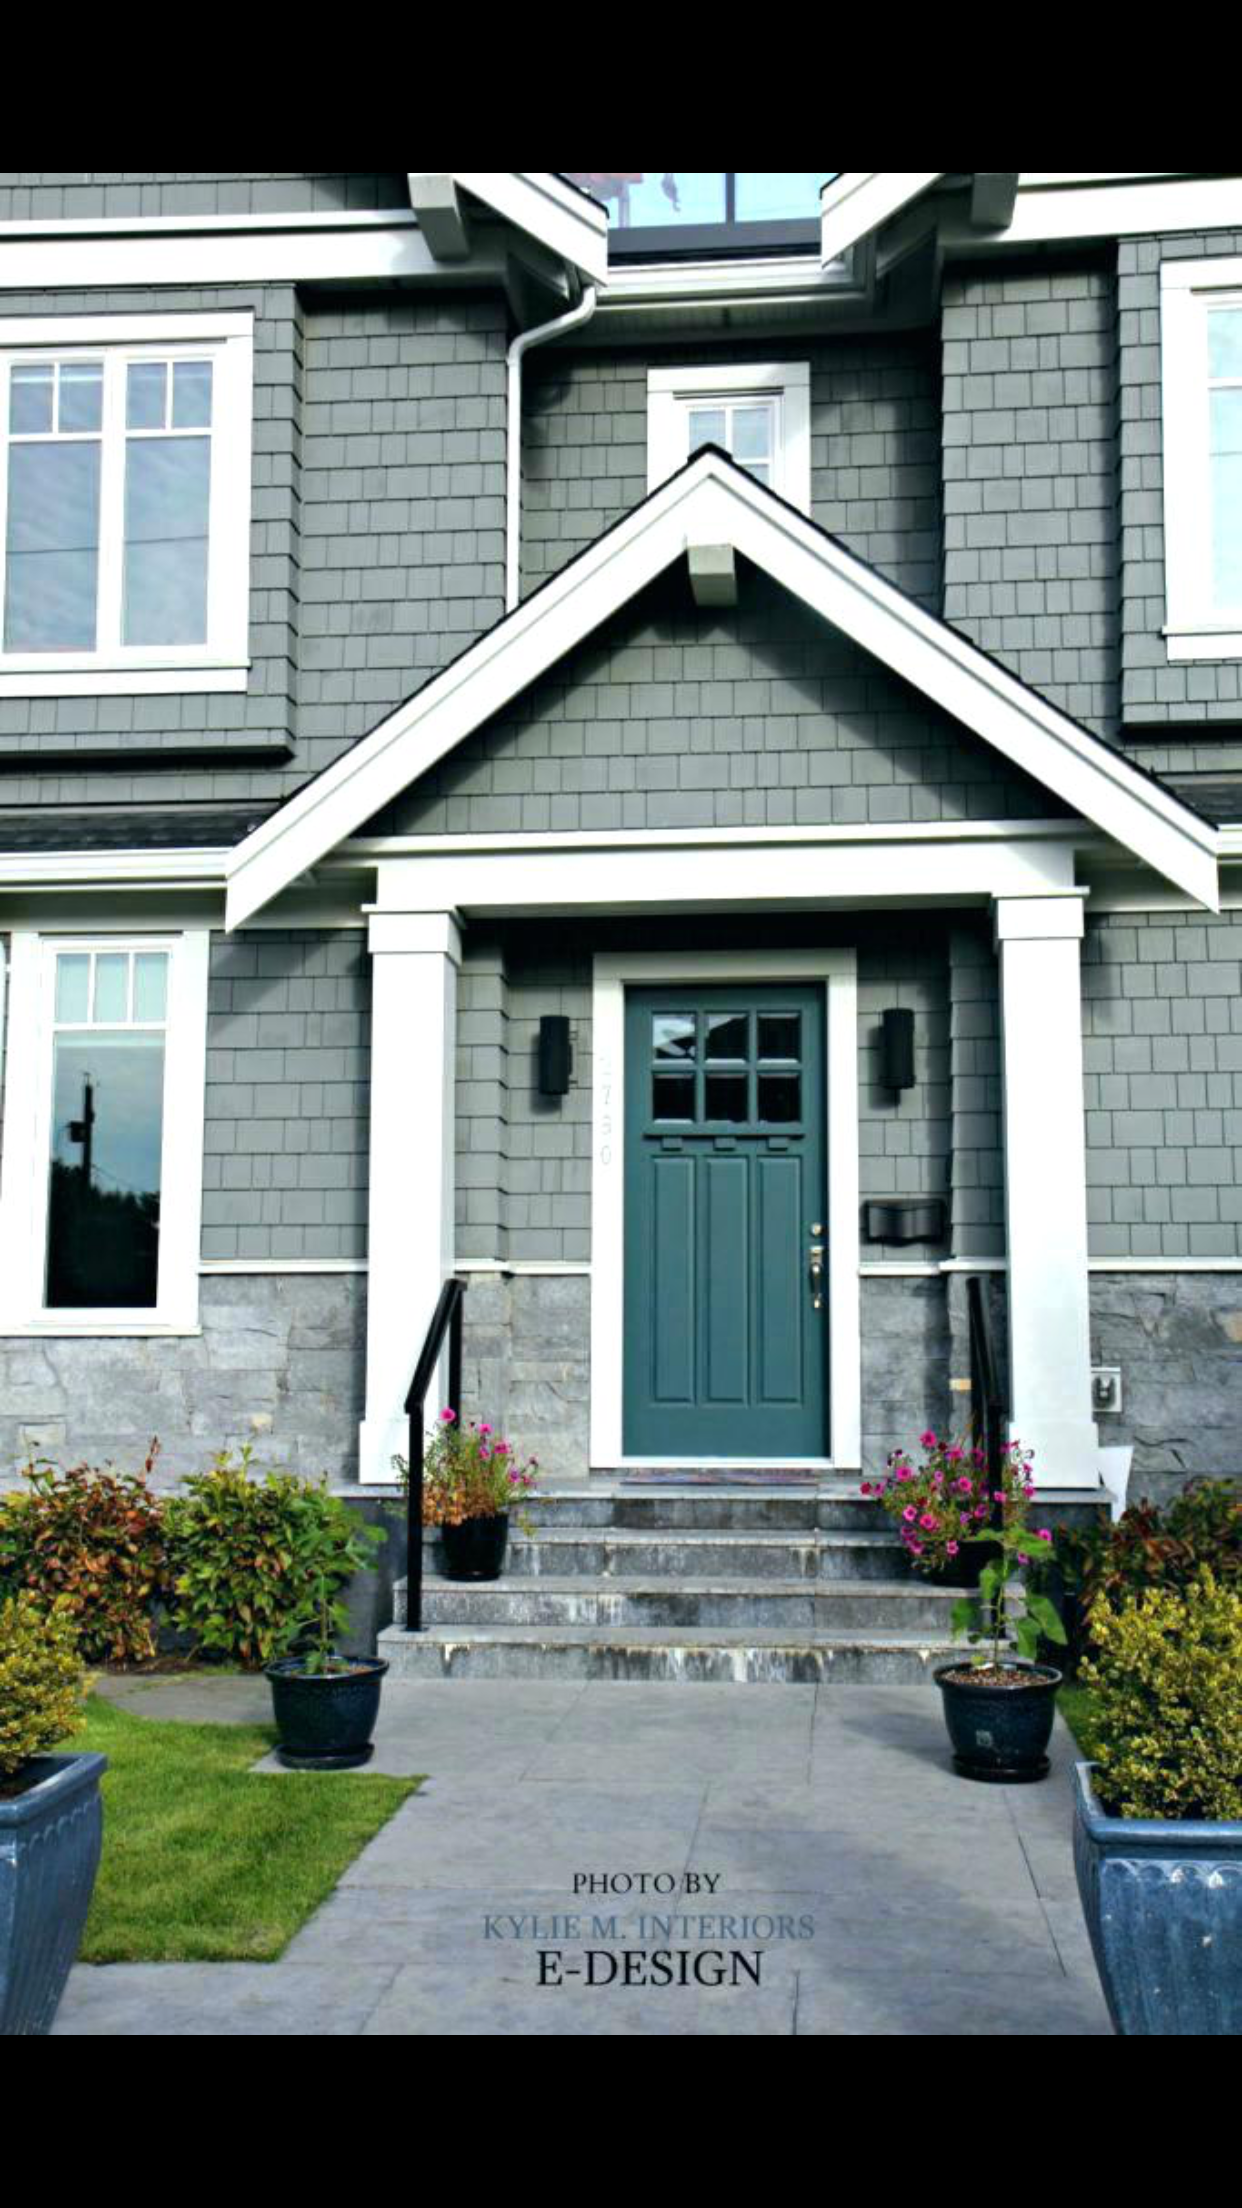 Pin by teresa immen on home in pinterest doors exterior